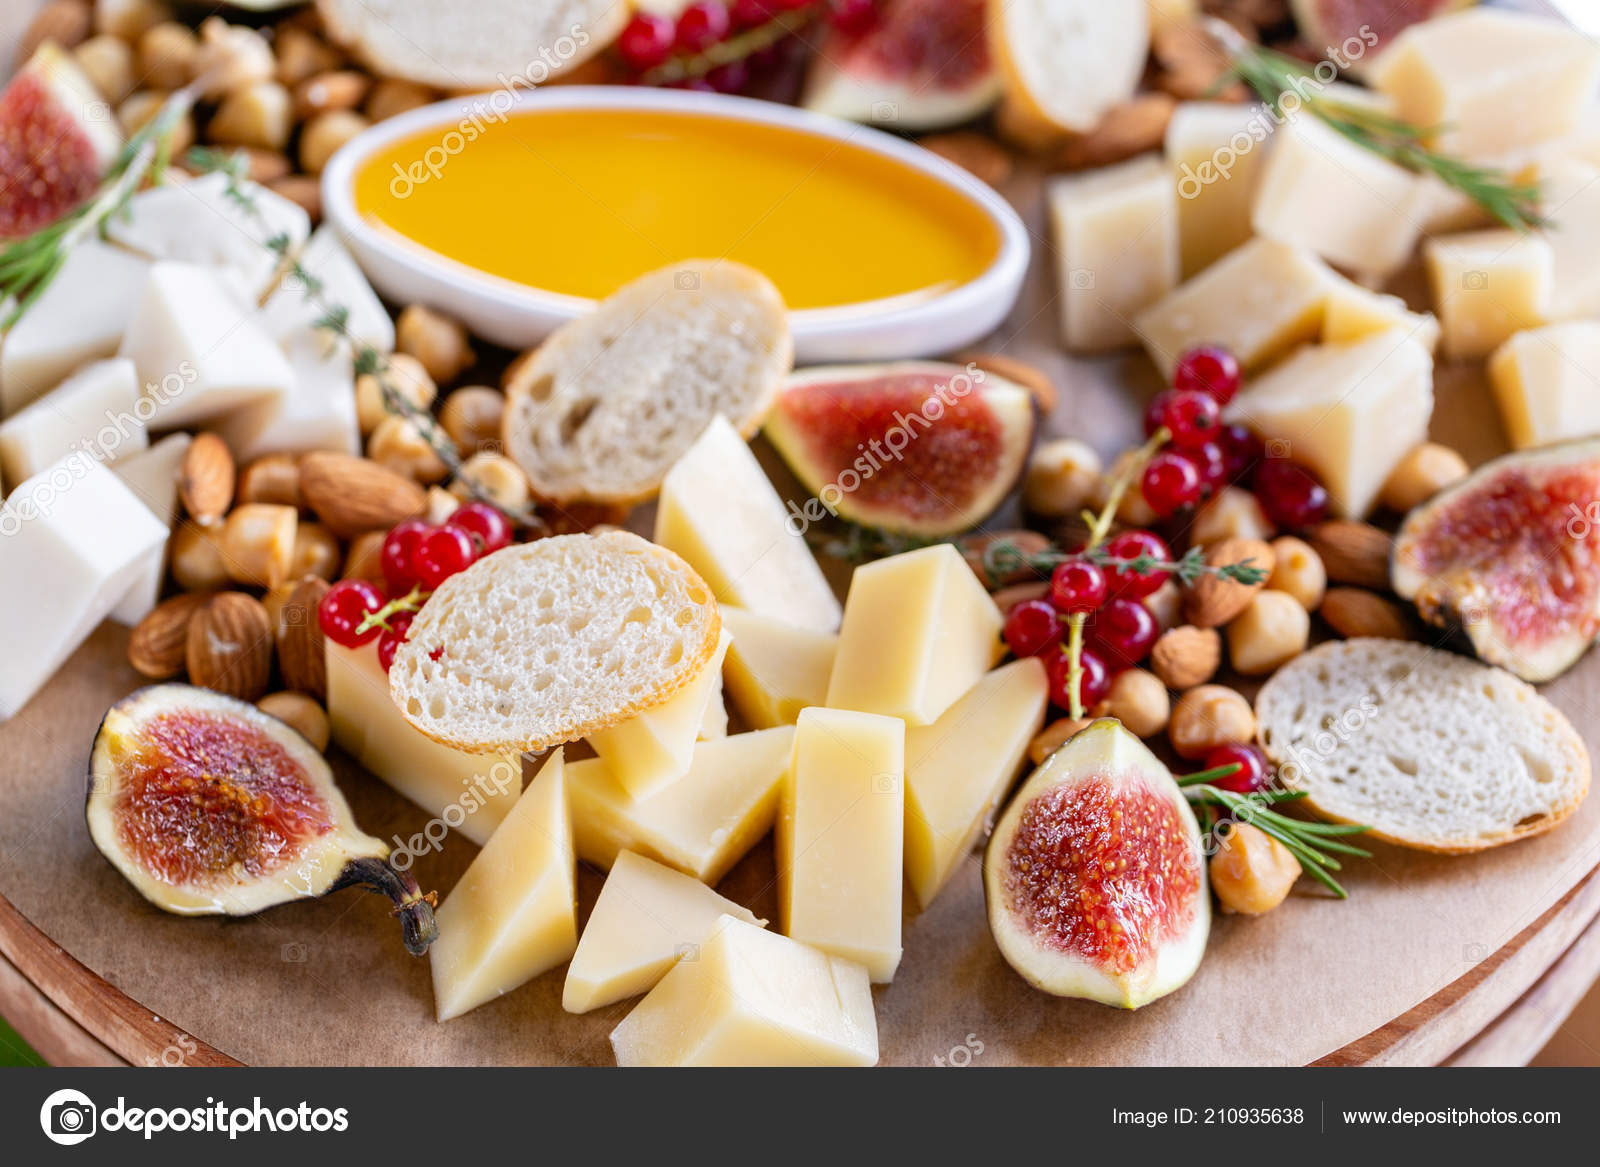 Light Italian Snacks A Buffet Table At A Dinner Party Cheese Plate Delicious Cheese Mix On Wooden Table Tasting Dish On A Wooden Plate Food For Wine Stock Photo C Malkovkosta 210935638